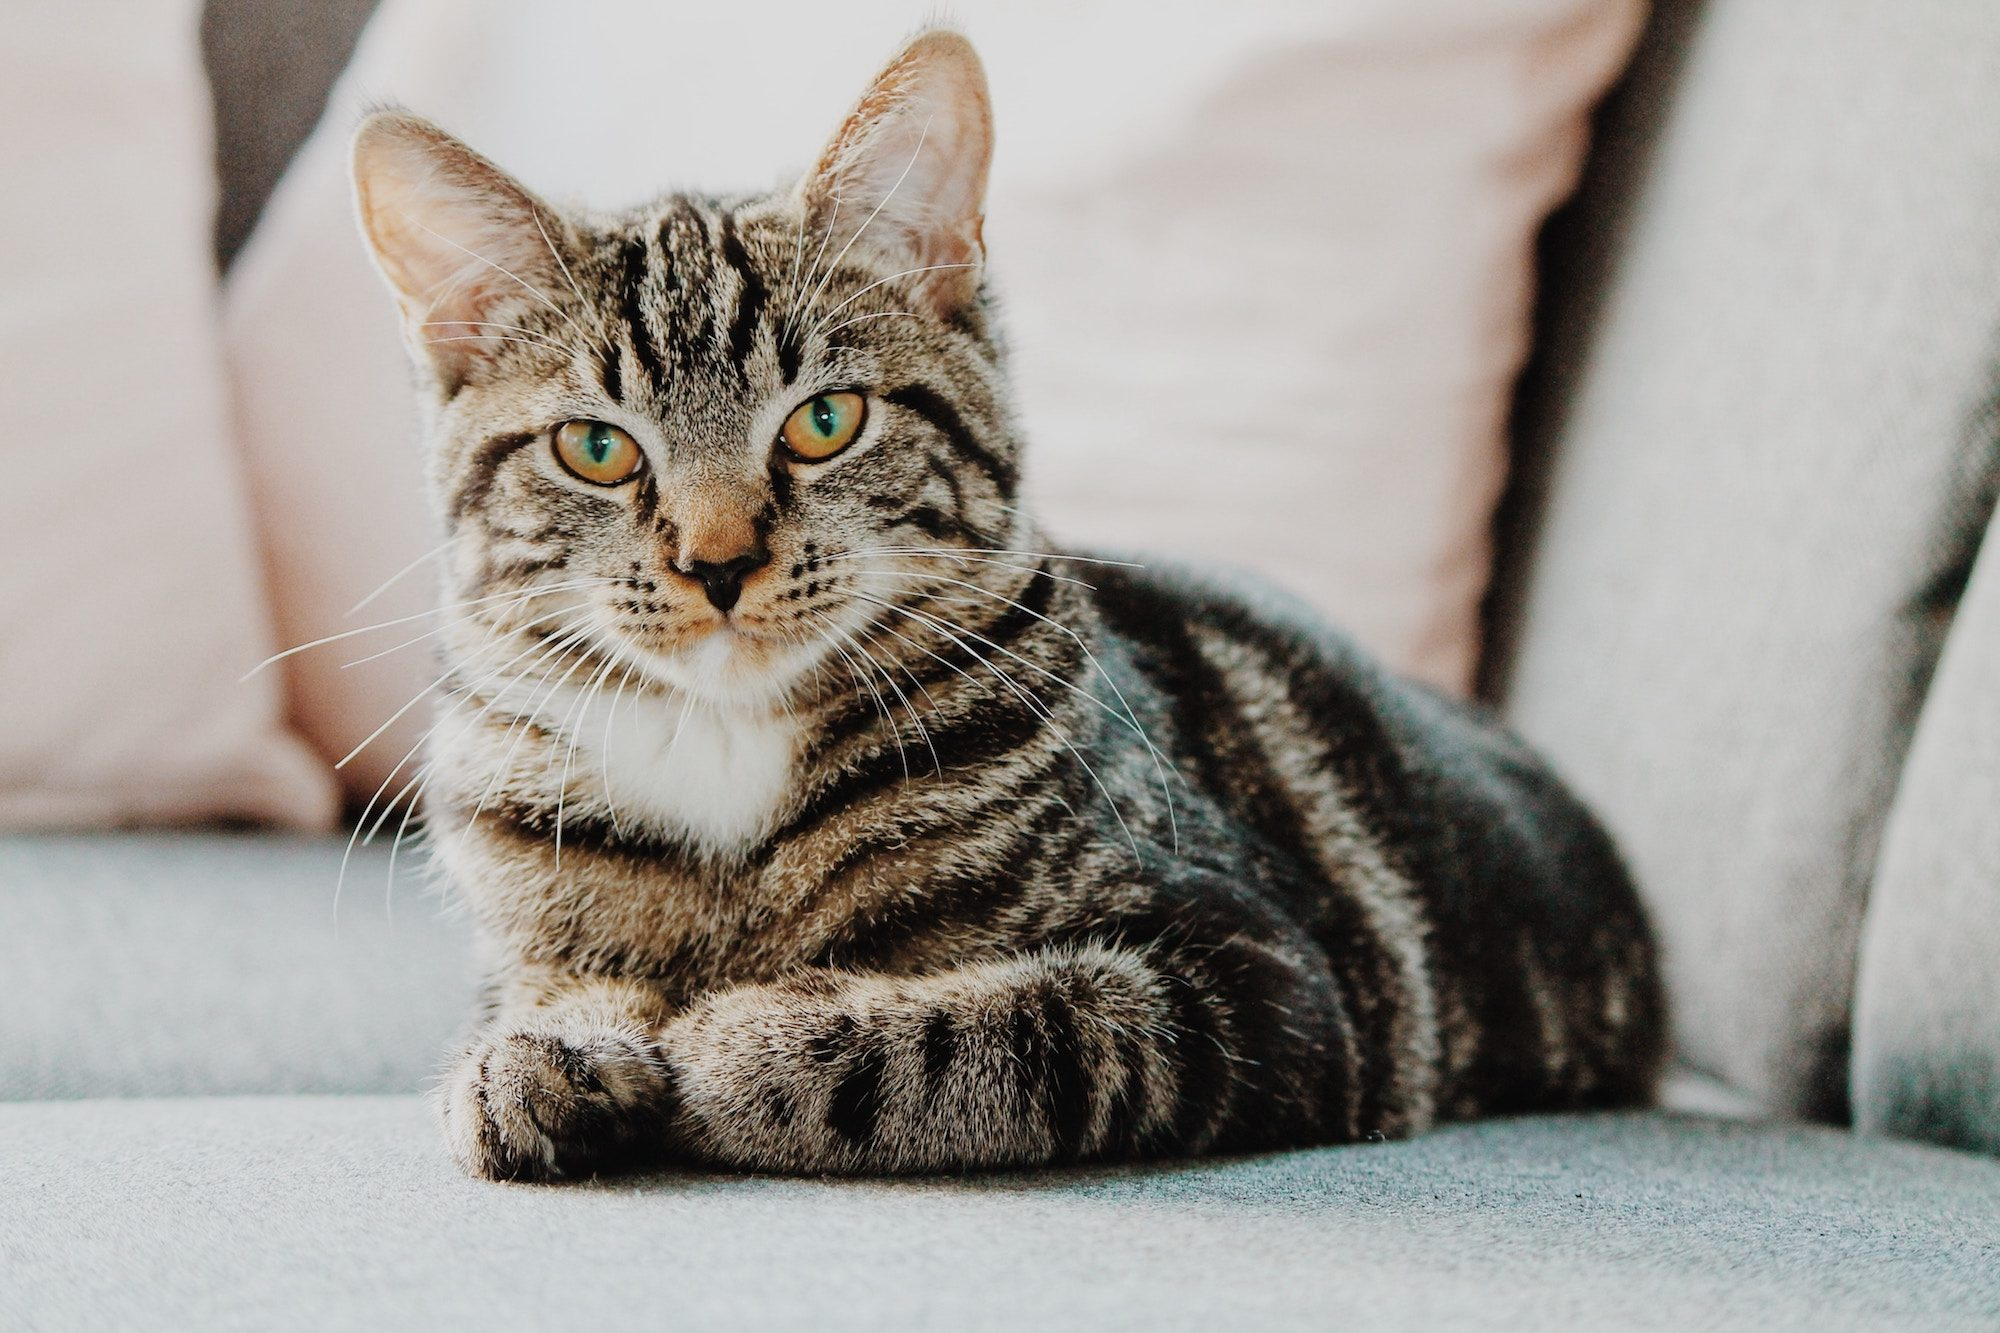 A striped brown and black cat lying with its paws tucked up underneath it on a couch, sulkily looking up.